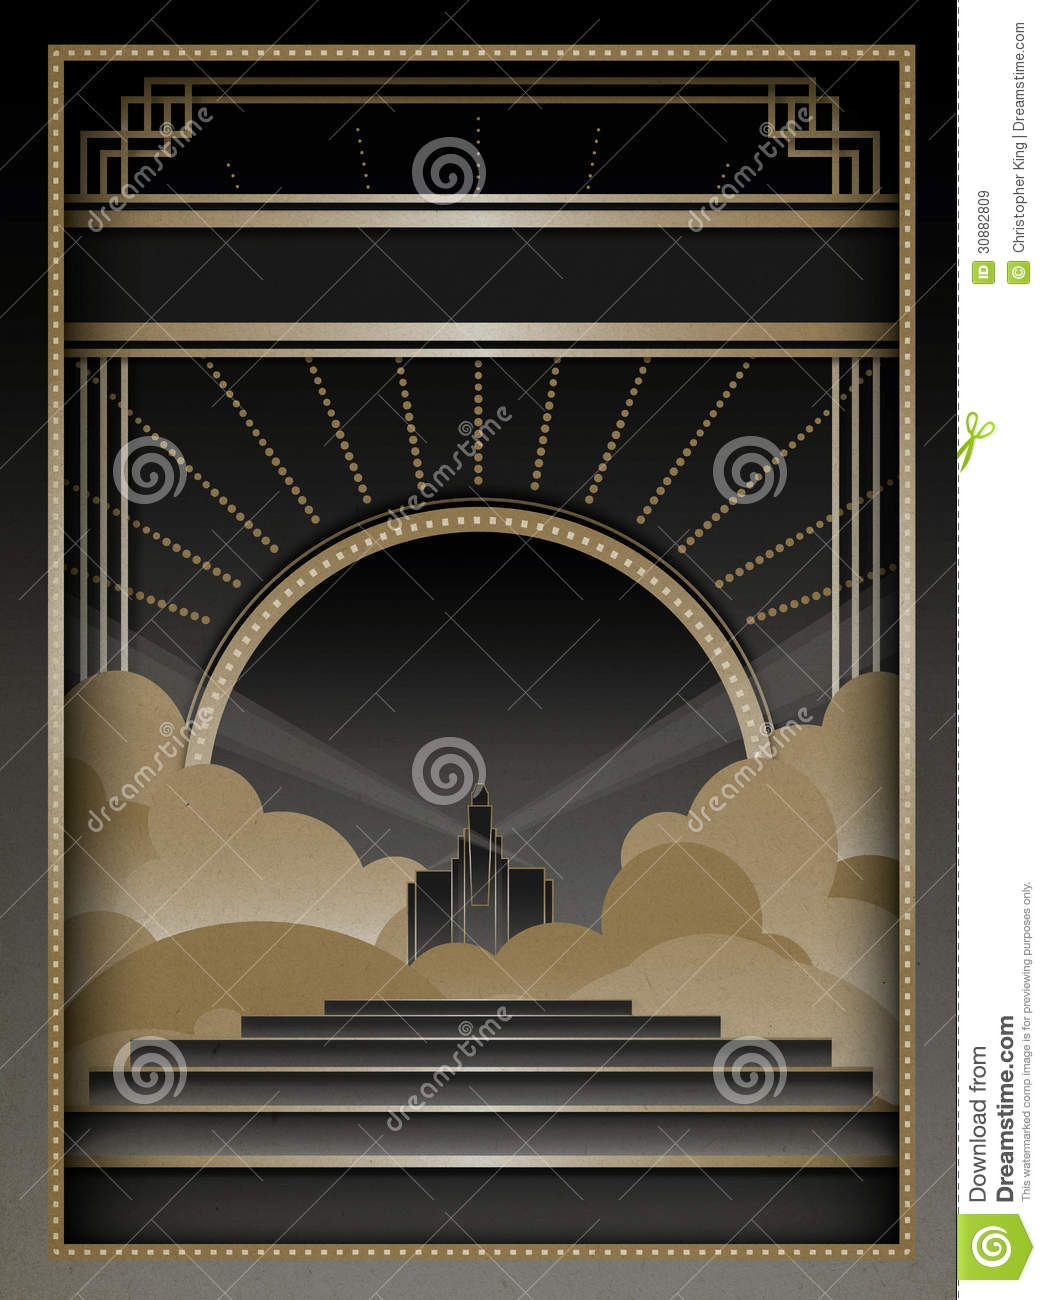 Art Deco Background And Frame Stock Vector Illustration Of Retro